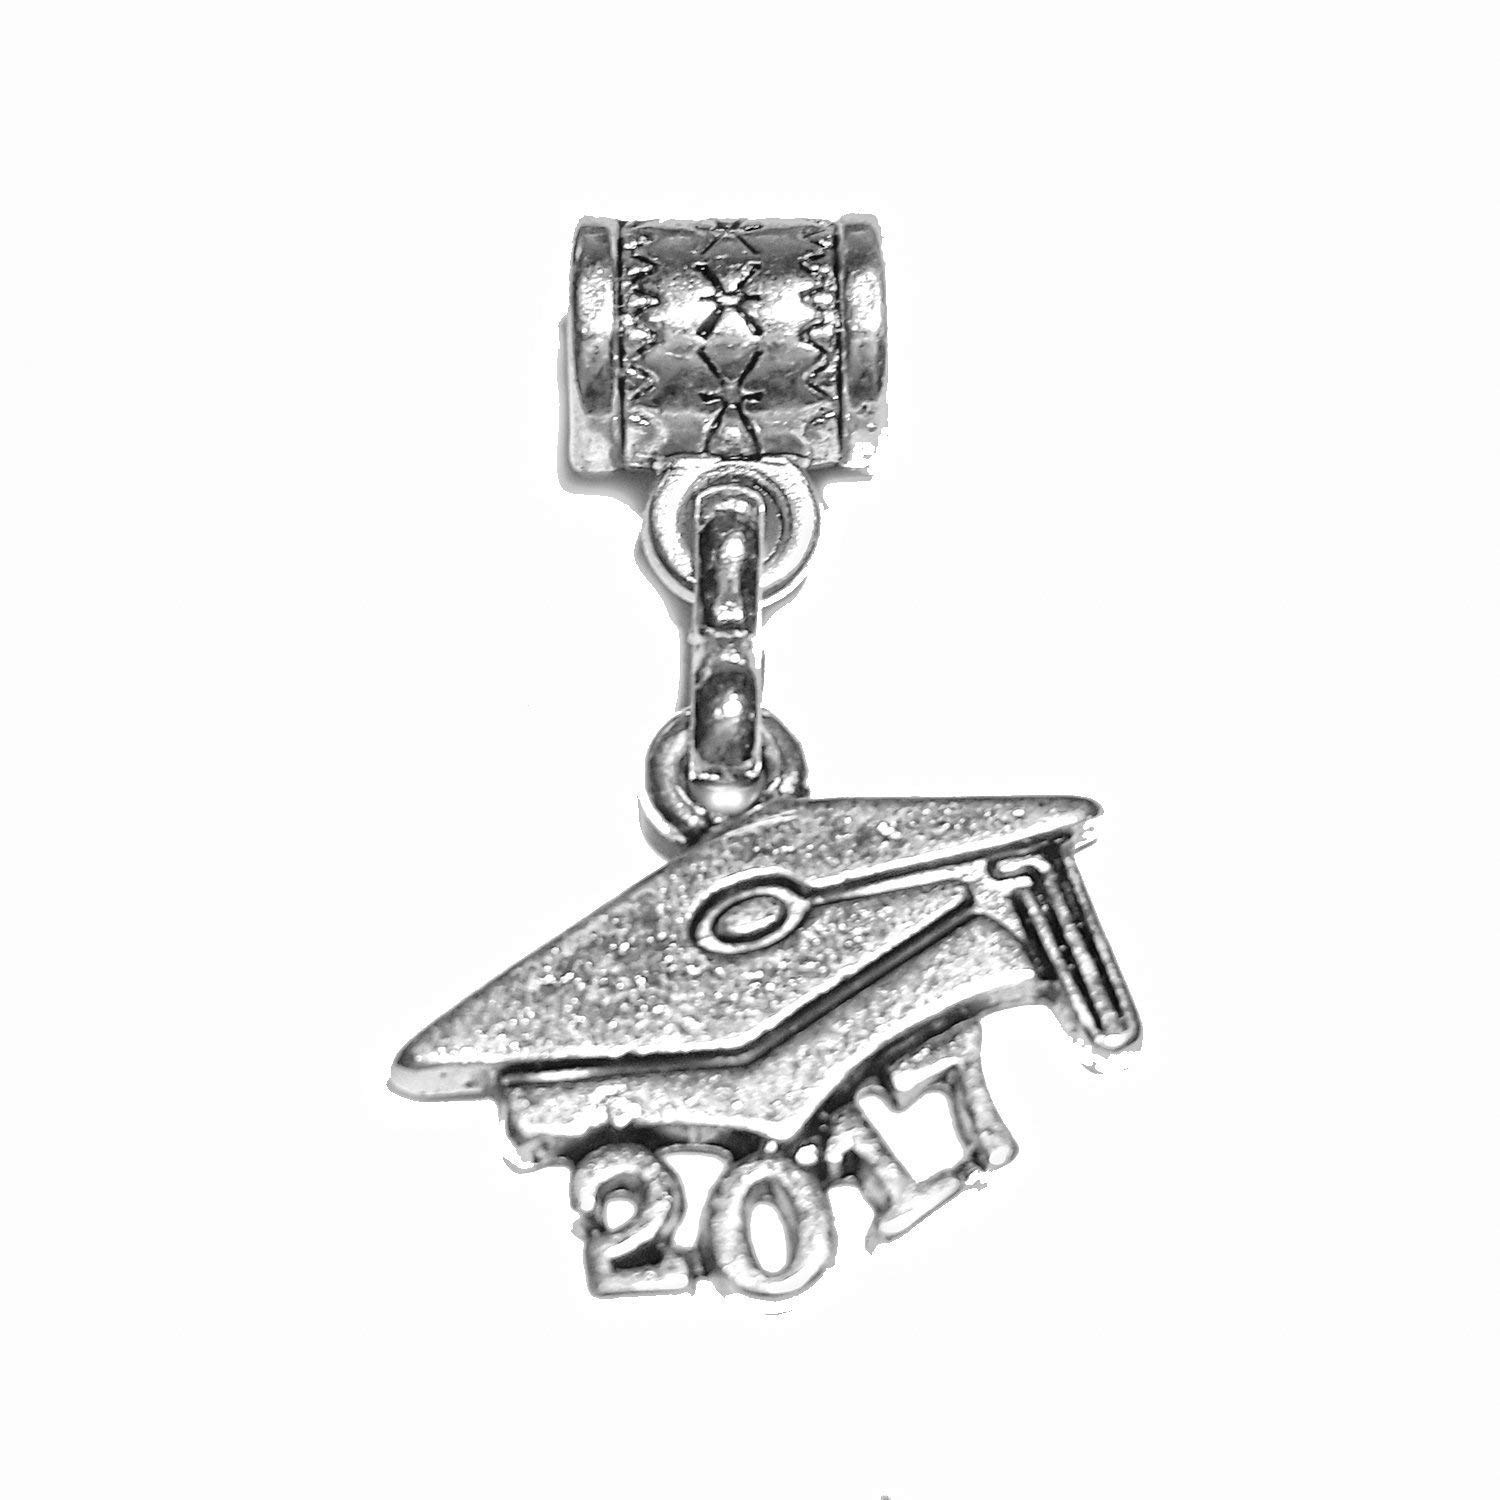 "Mossy Cabin ""Graduate 2017"" Tibetan Silver Hanging charm for large hole style snake chain charm bracelets, neck chains or key chains. ON SALE NOW!"